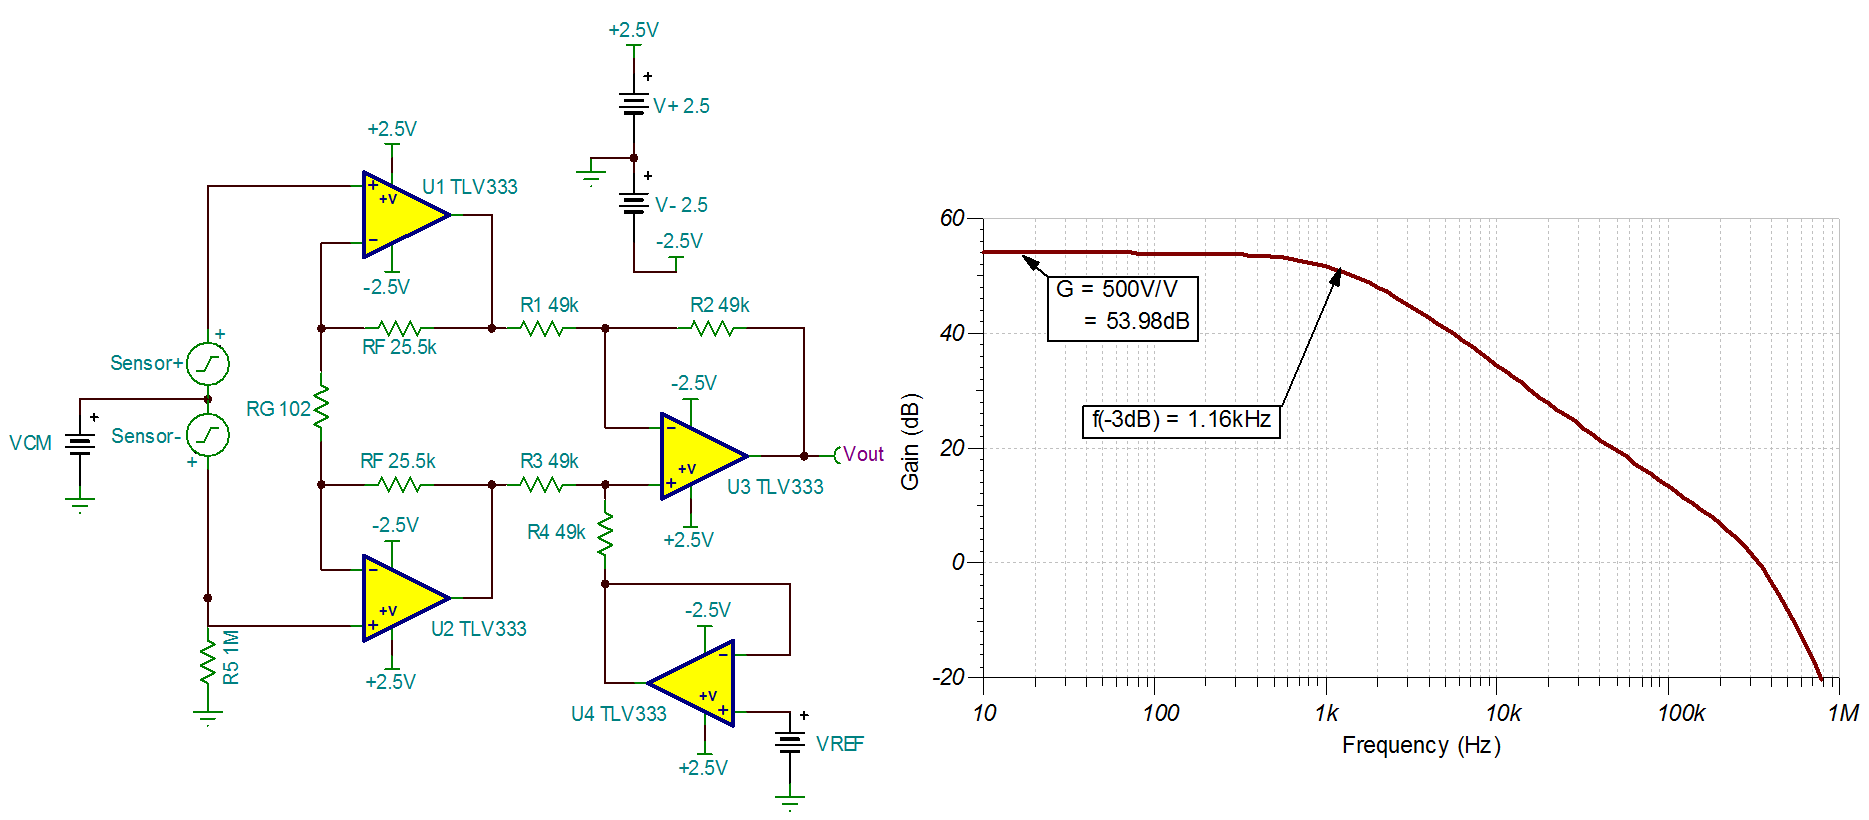 How To Design Cost Sensitive Dc Instrumentation Circuits Precision Specialpurpose Opamp Electronics Questions And Answers You Can Use The Tlvx333 Family Of Devices In Several Ways Create Accurate That Are Ideal For Optimized Sensor Acquisition